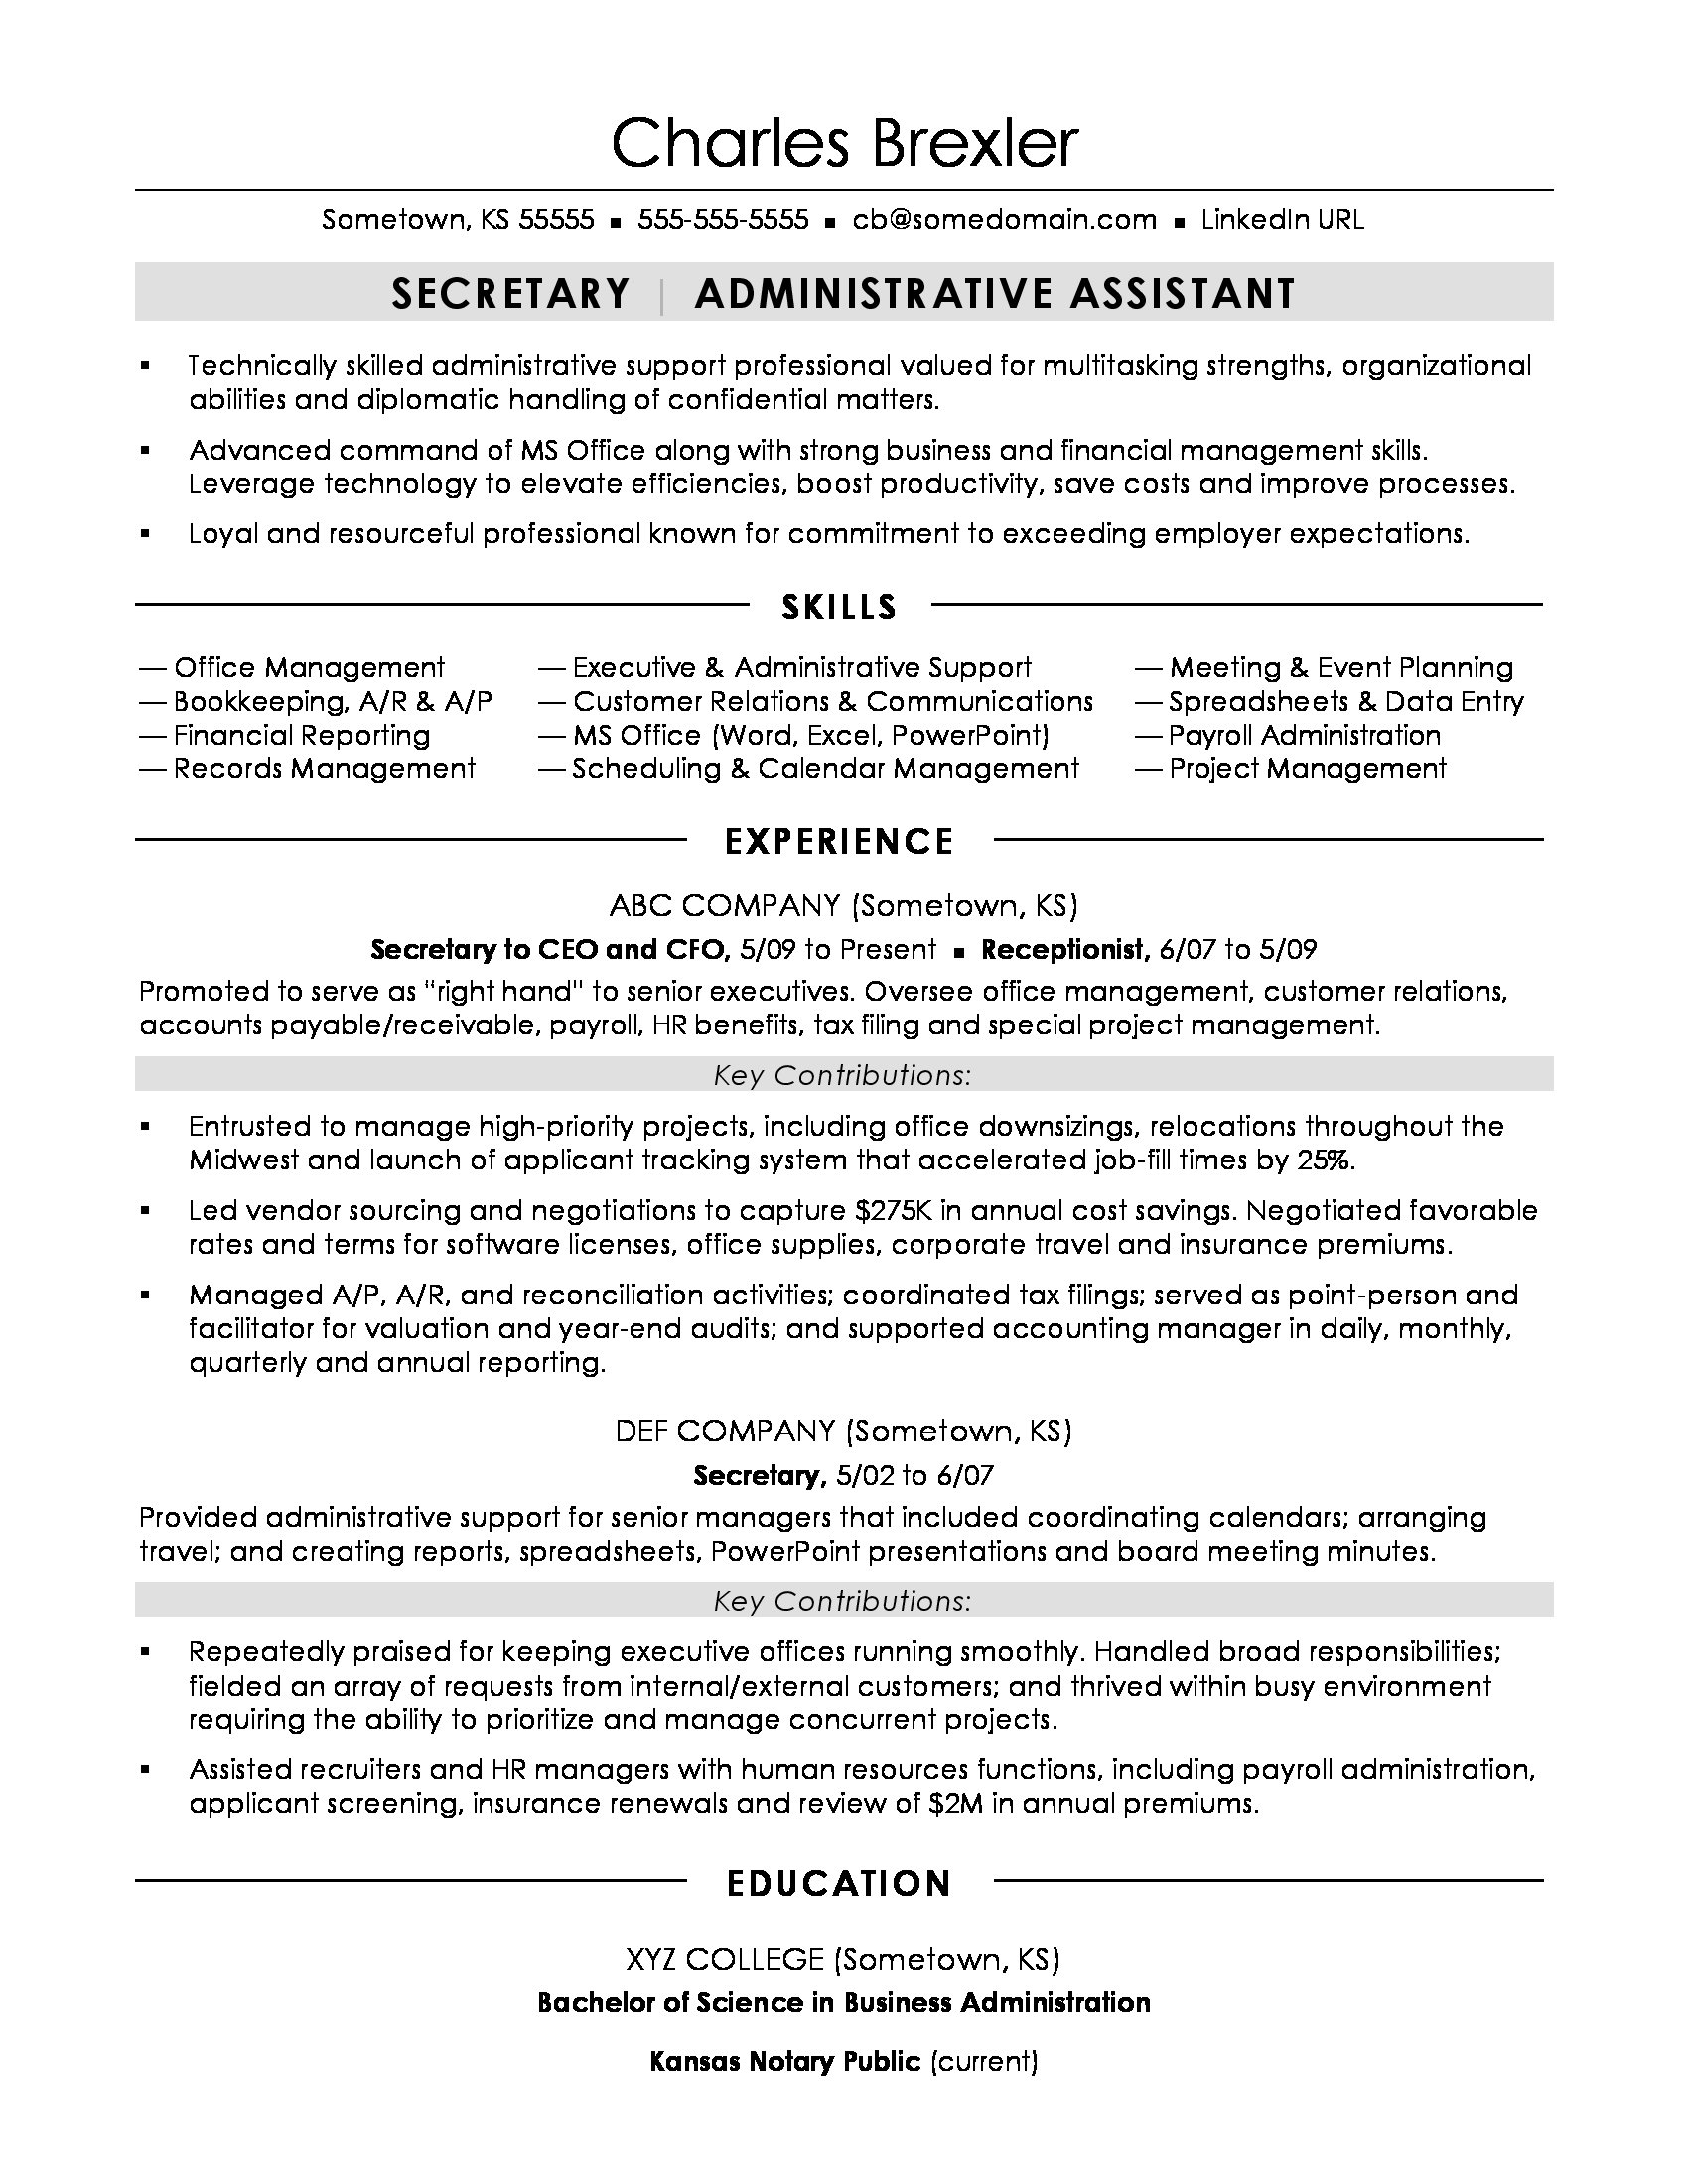 secretary resume sample - Secretary Resume Sample